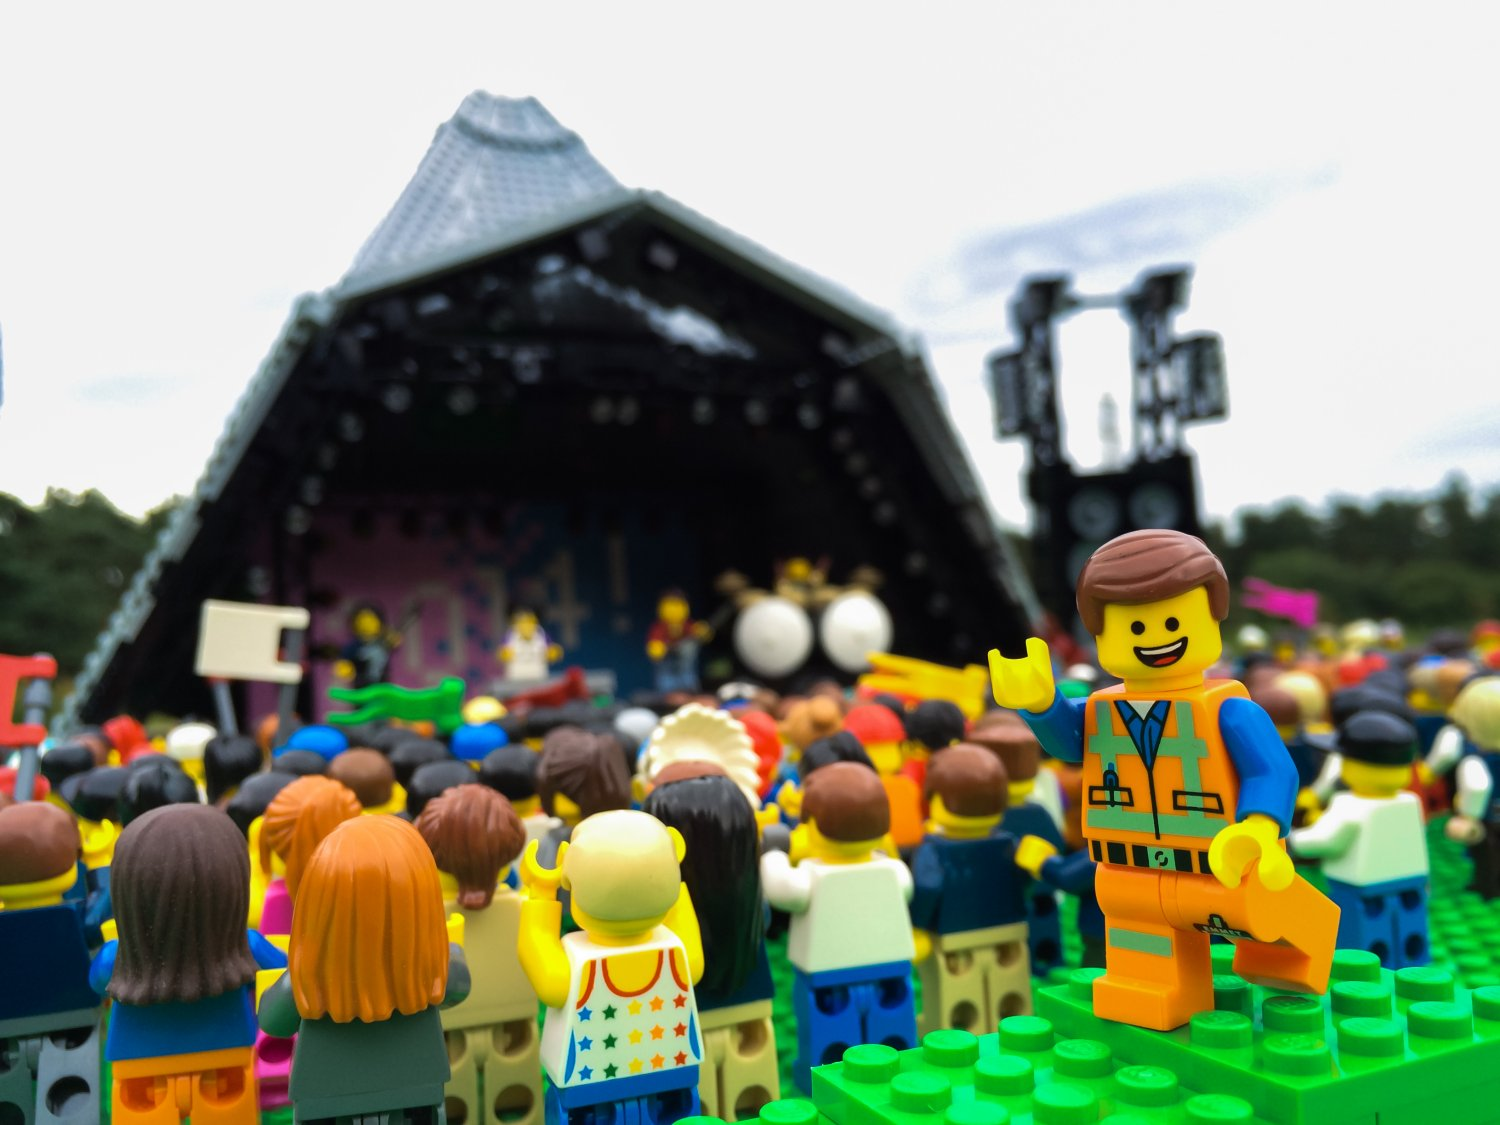 The mud didnt bother Emmet, star of The LEGO Movie, as he gets into the festival spirit at Glastonbury